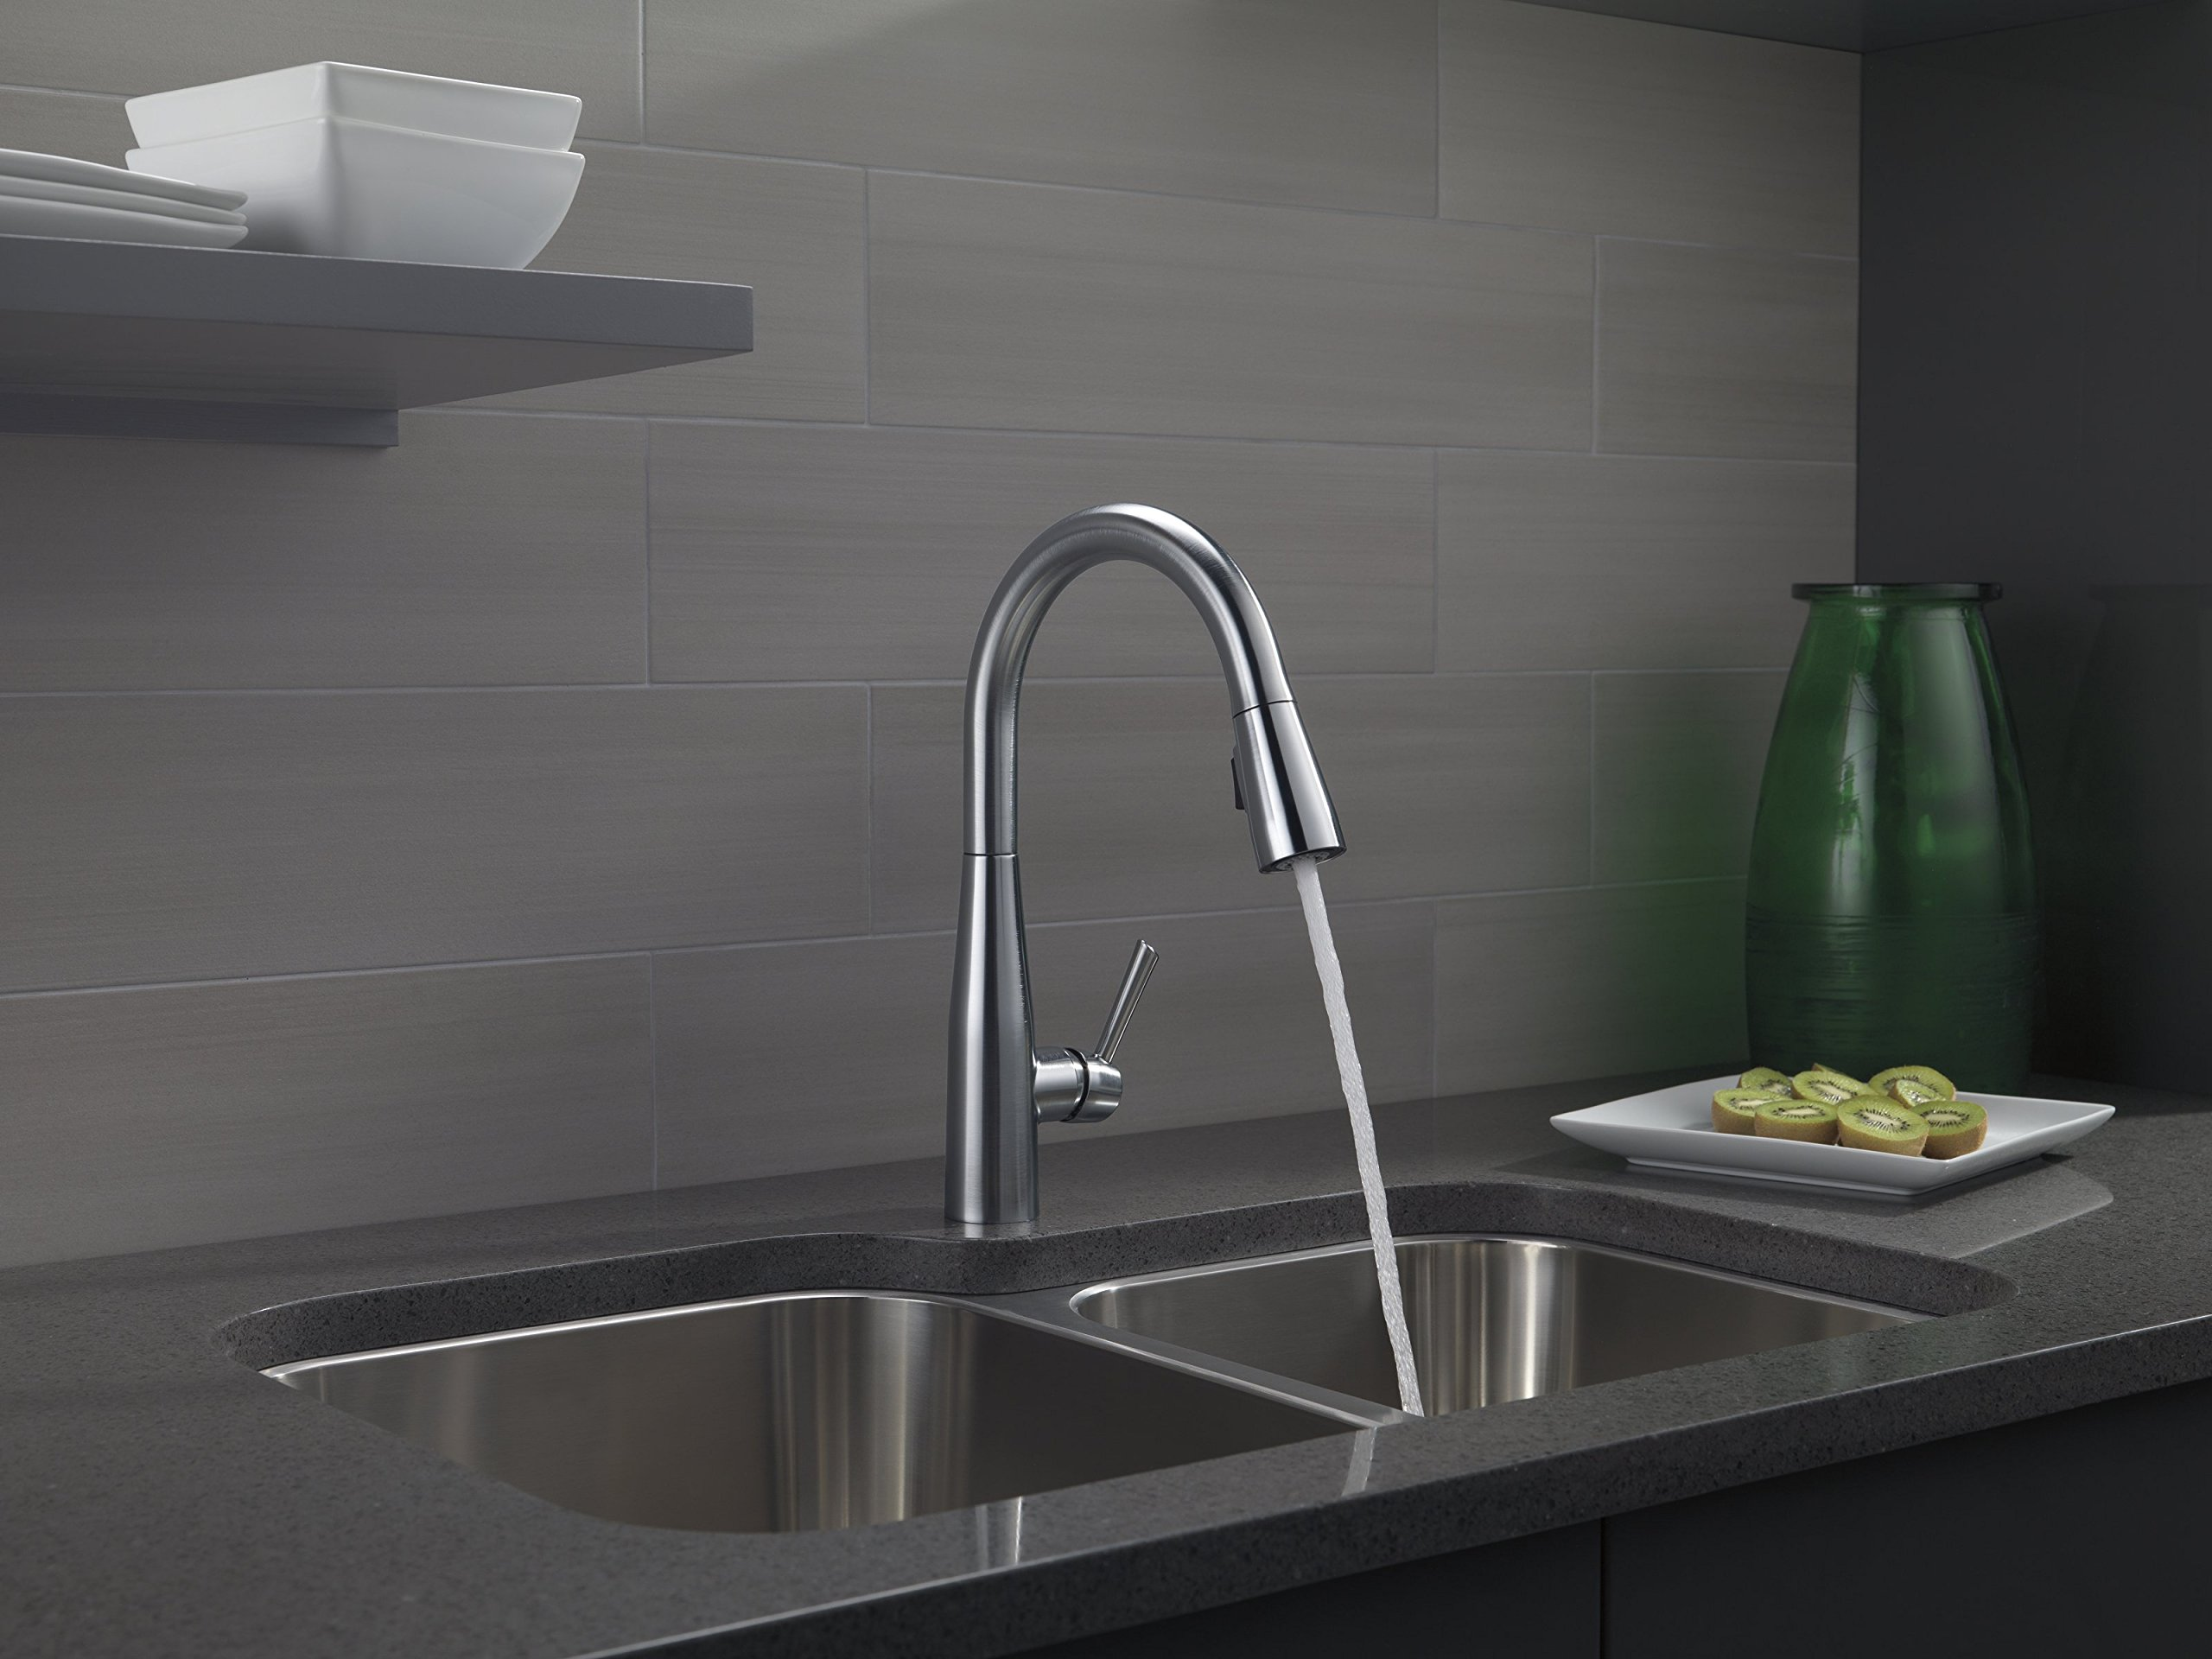 Delta Faucet Essa Single-Handle Kitchen Sink Faucet with Pull Down Sprayer and Magnetic Docking Spray Head, Arctic Stainless 9113-AR-DST by DELTA FAUCET (Image #7)